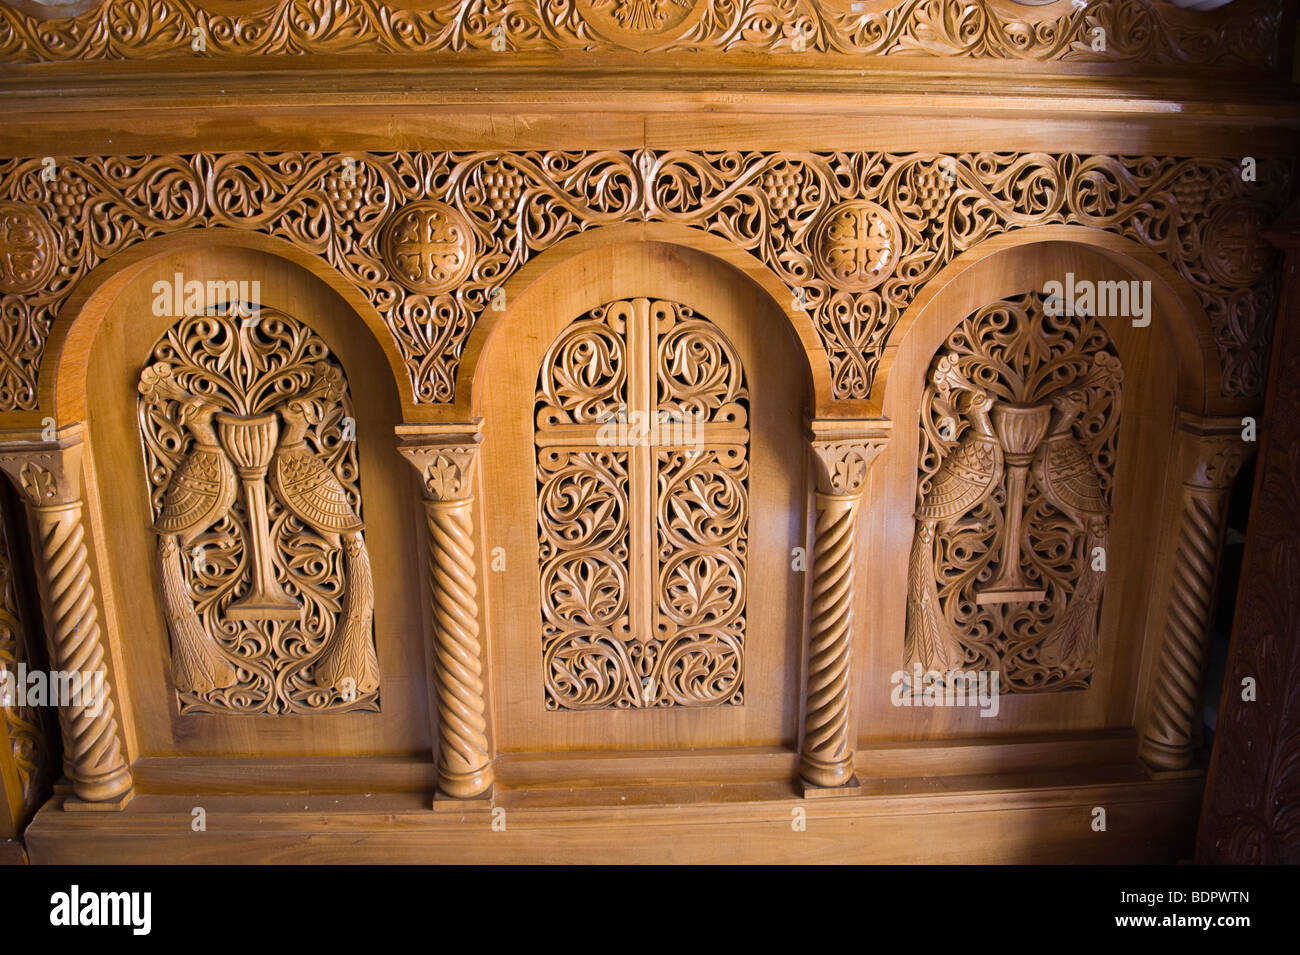 Ornate wood carving in church of virgin mary lagouvarda virgin mary